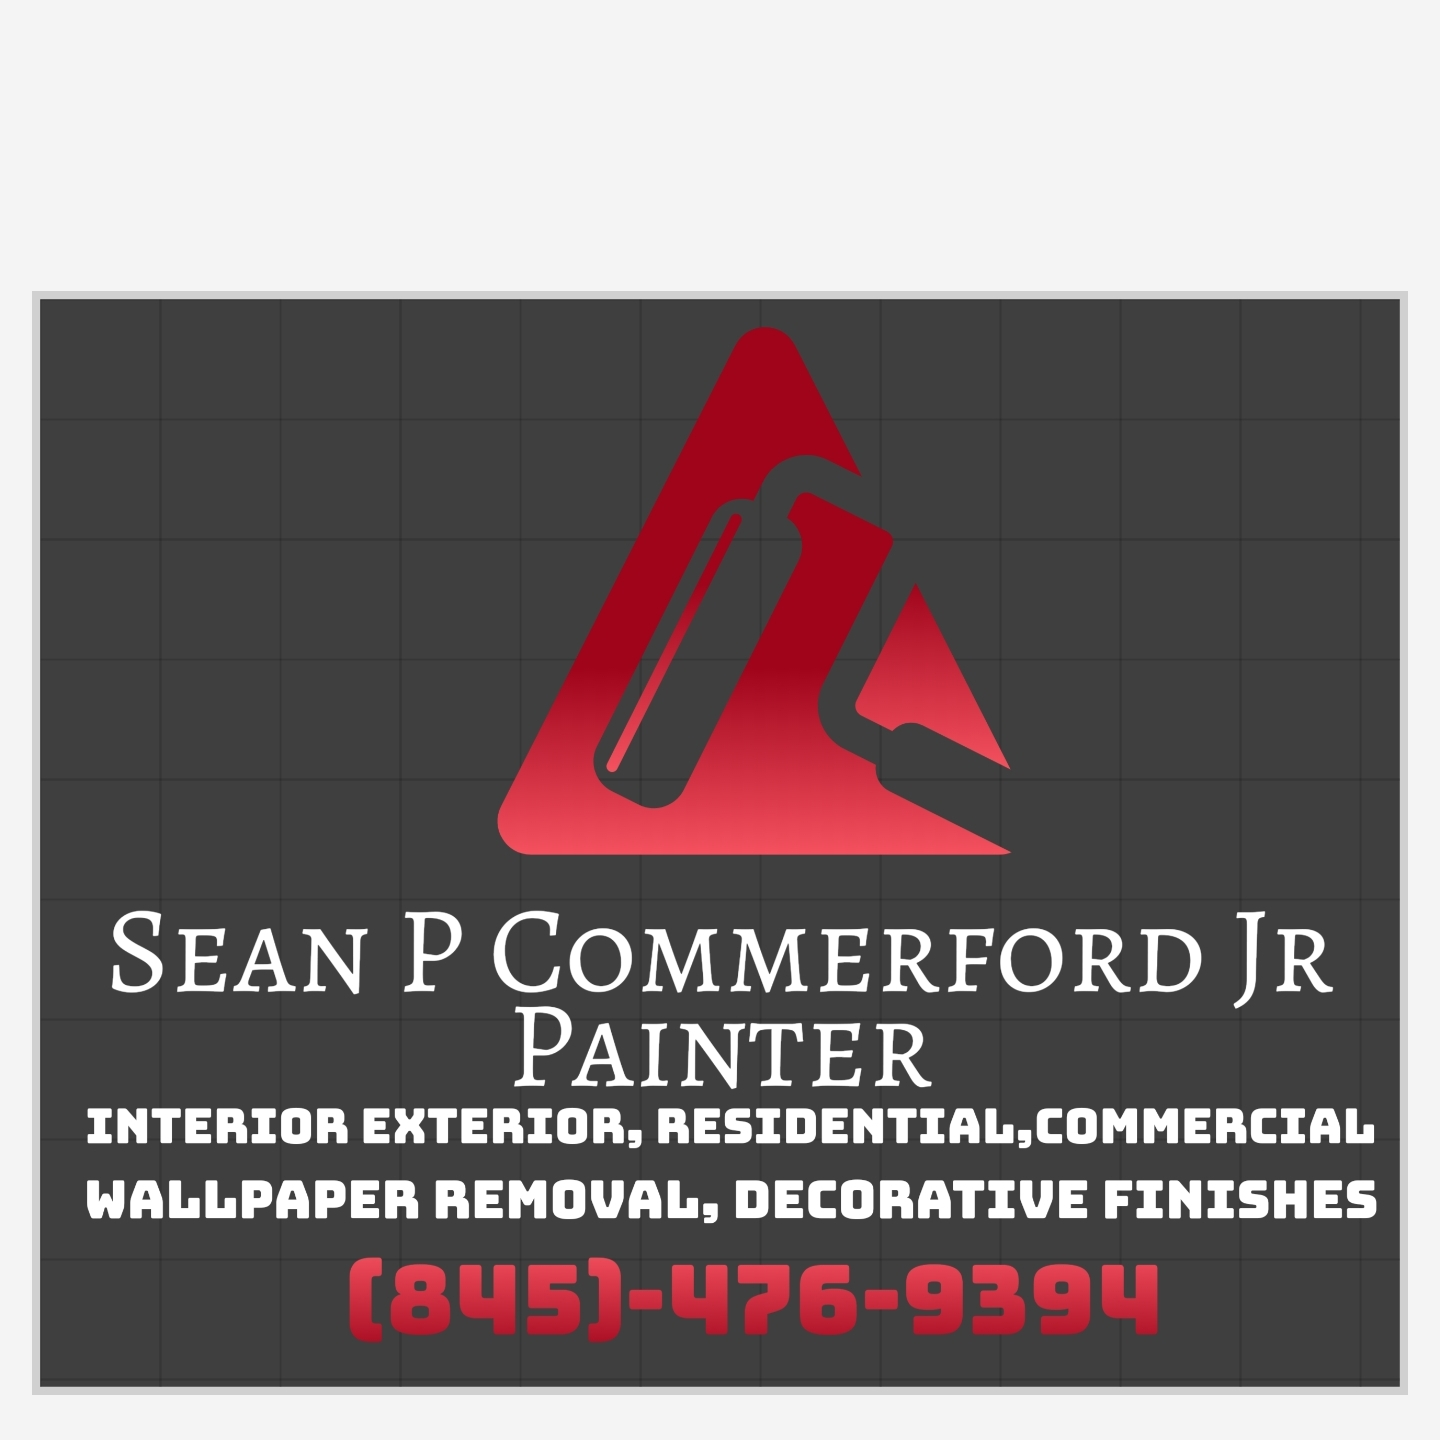 Sean P Commerford Jr. Painting